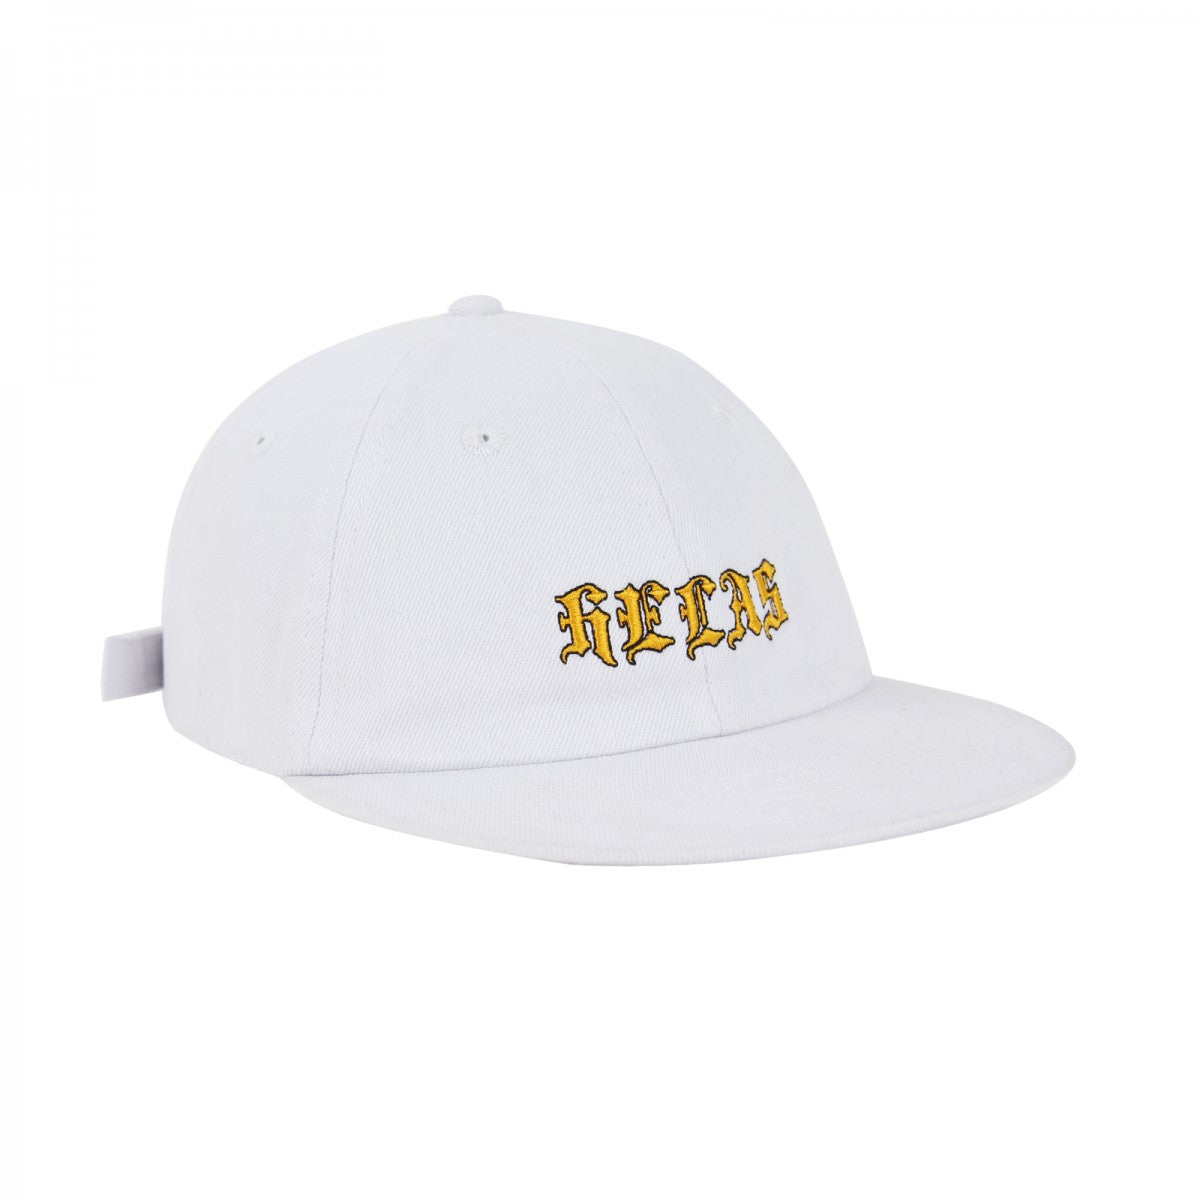 Helas - Cholo Cap White